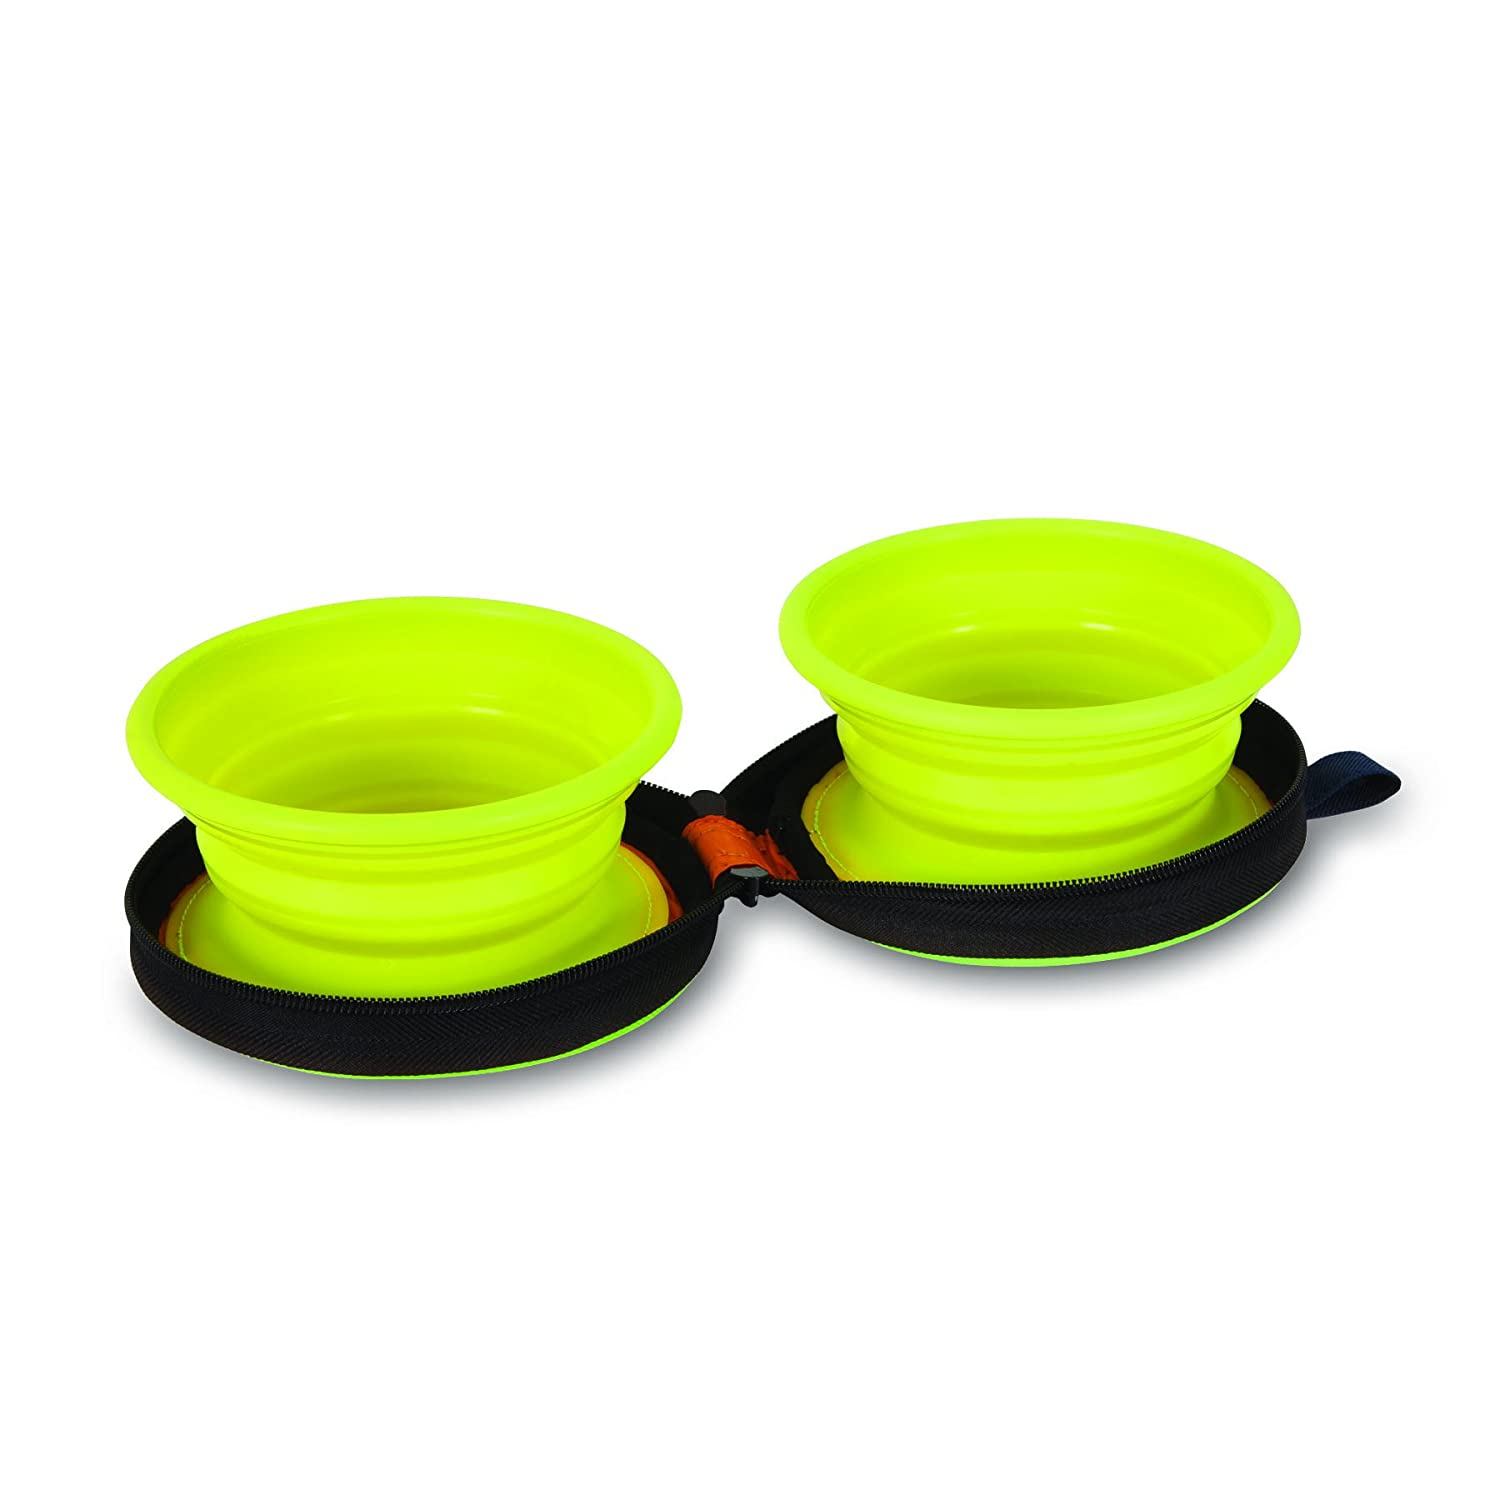 Amazoncom Petmate Cup Silicone Duo Travel Bowl Pet Supplies - Cat and dog duo take the best travel photos ever